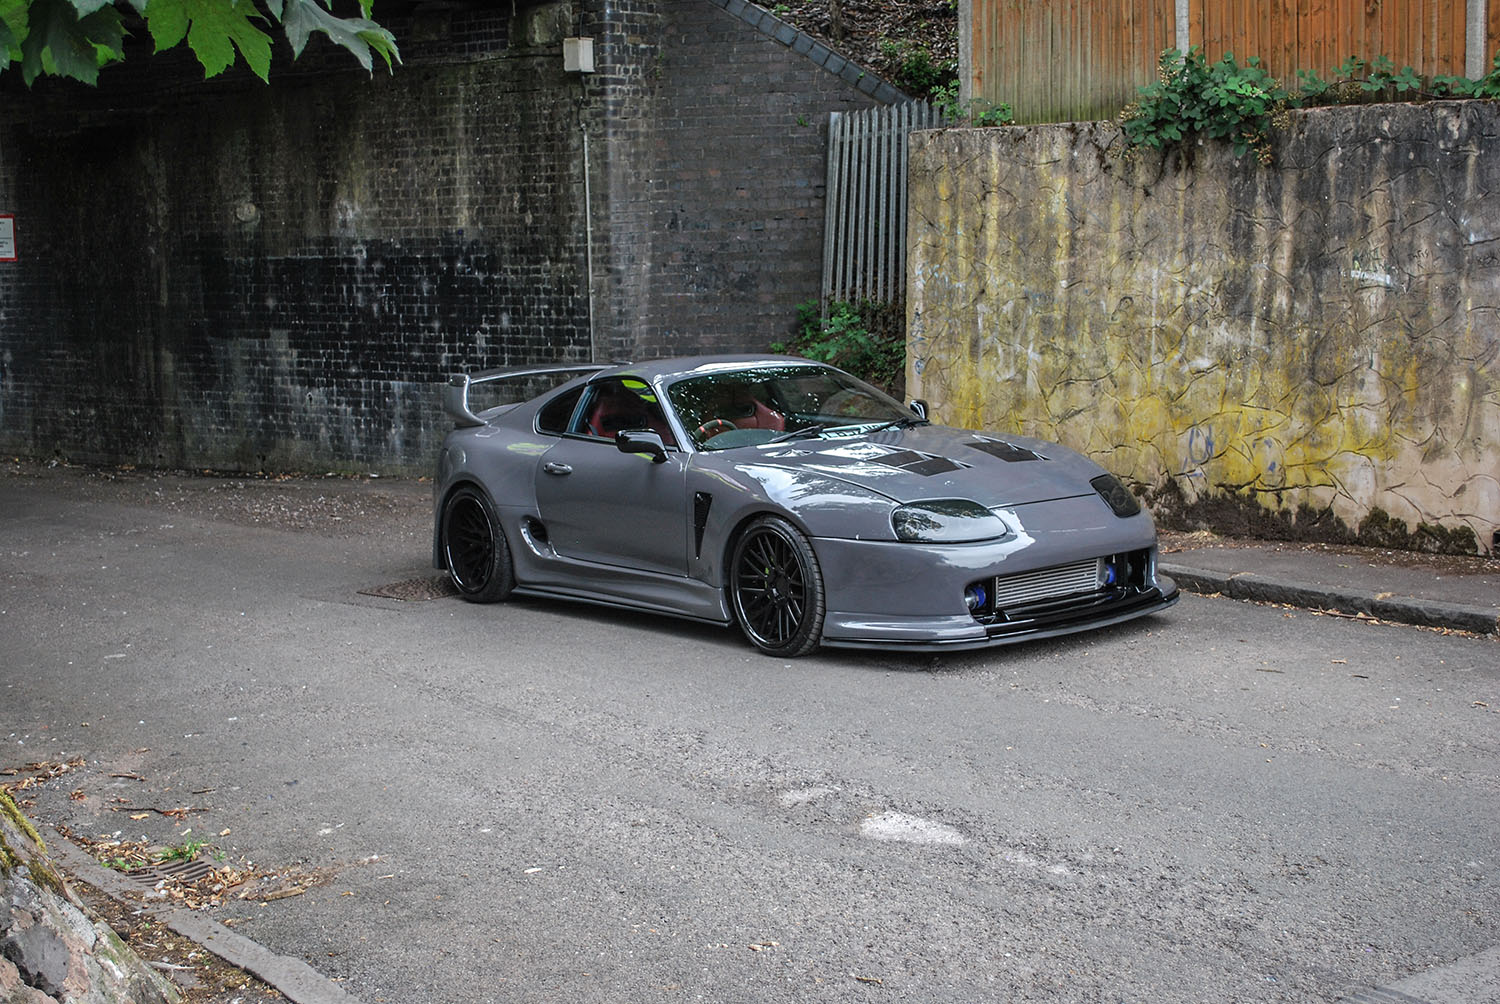 Speedwells Wide Body Supra